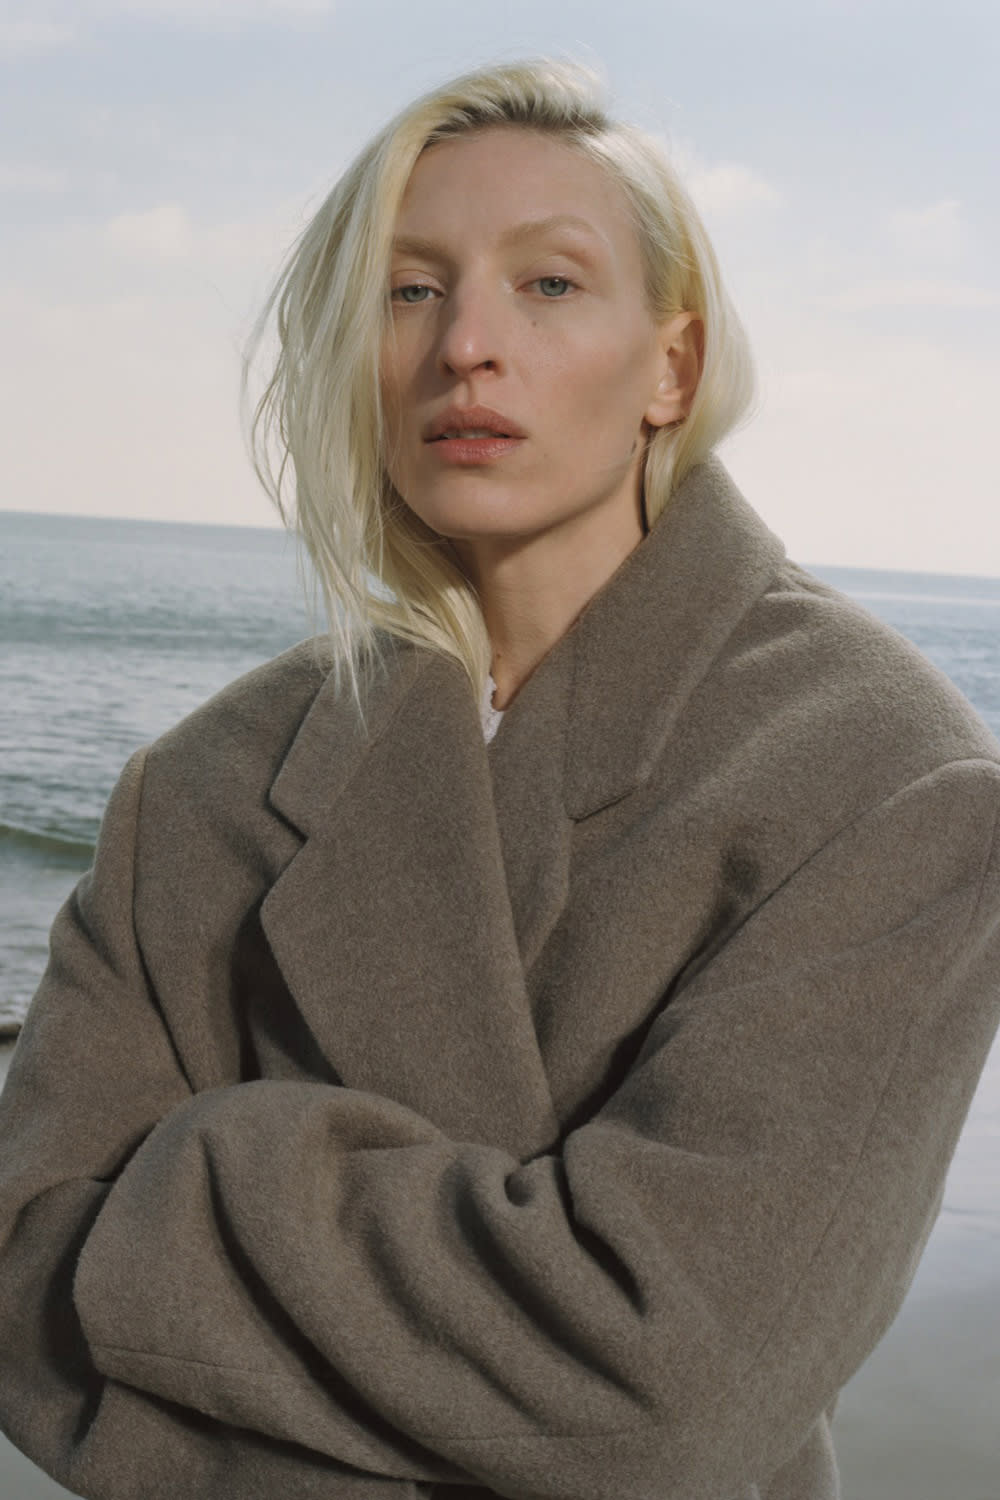 Fear of God Present Their Seventh Collection look book